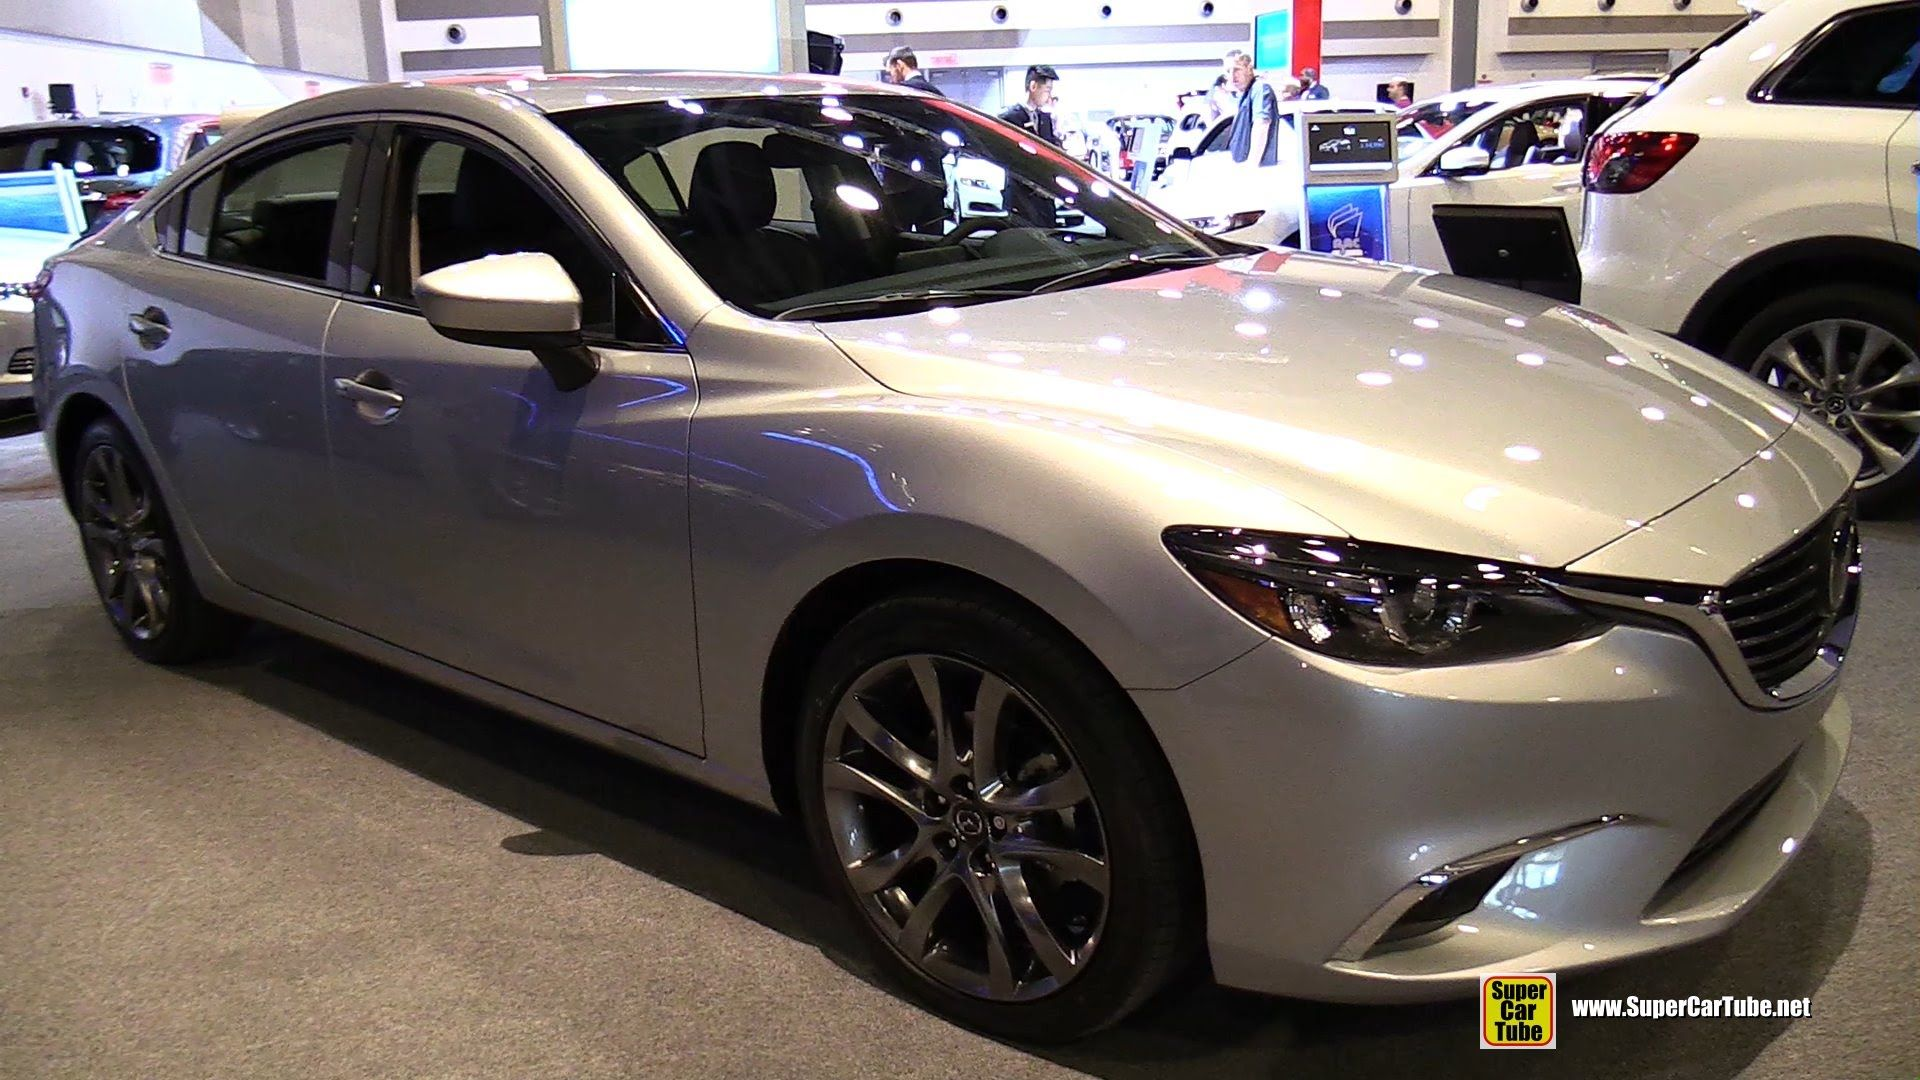 2016 mazda 6 review and price http www carstim com